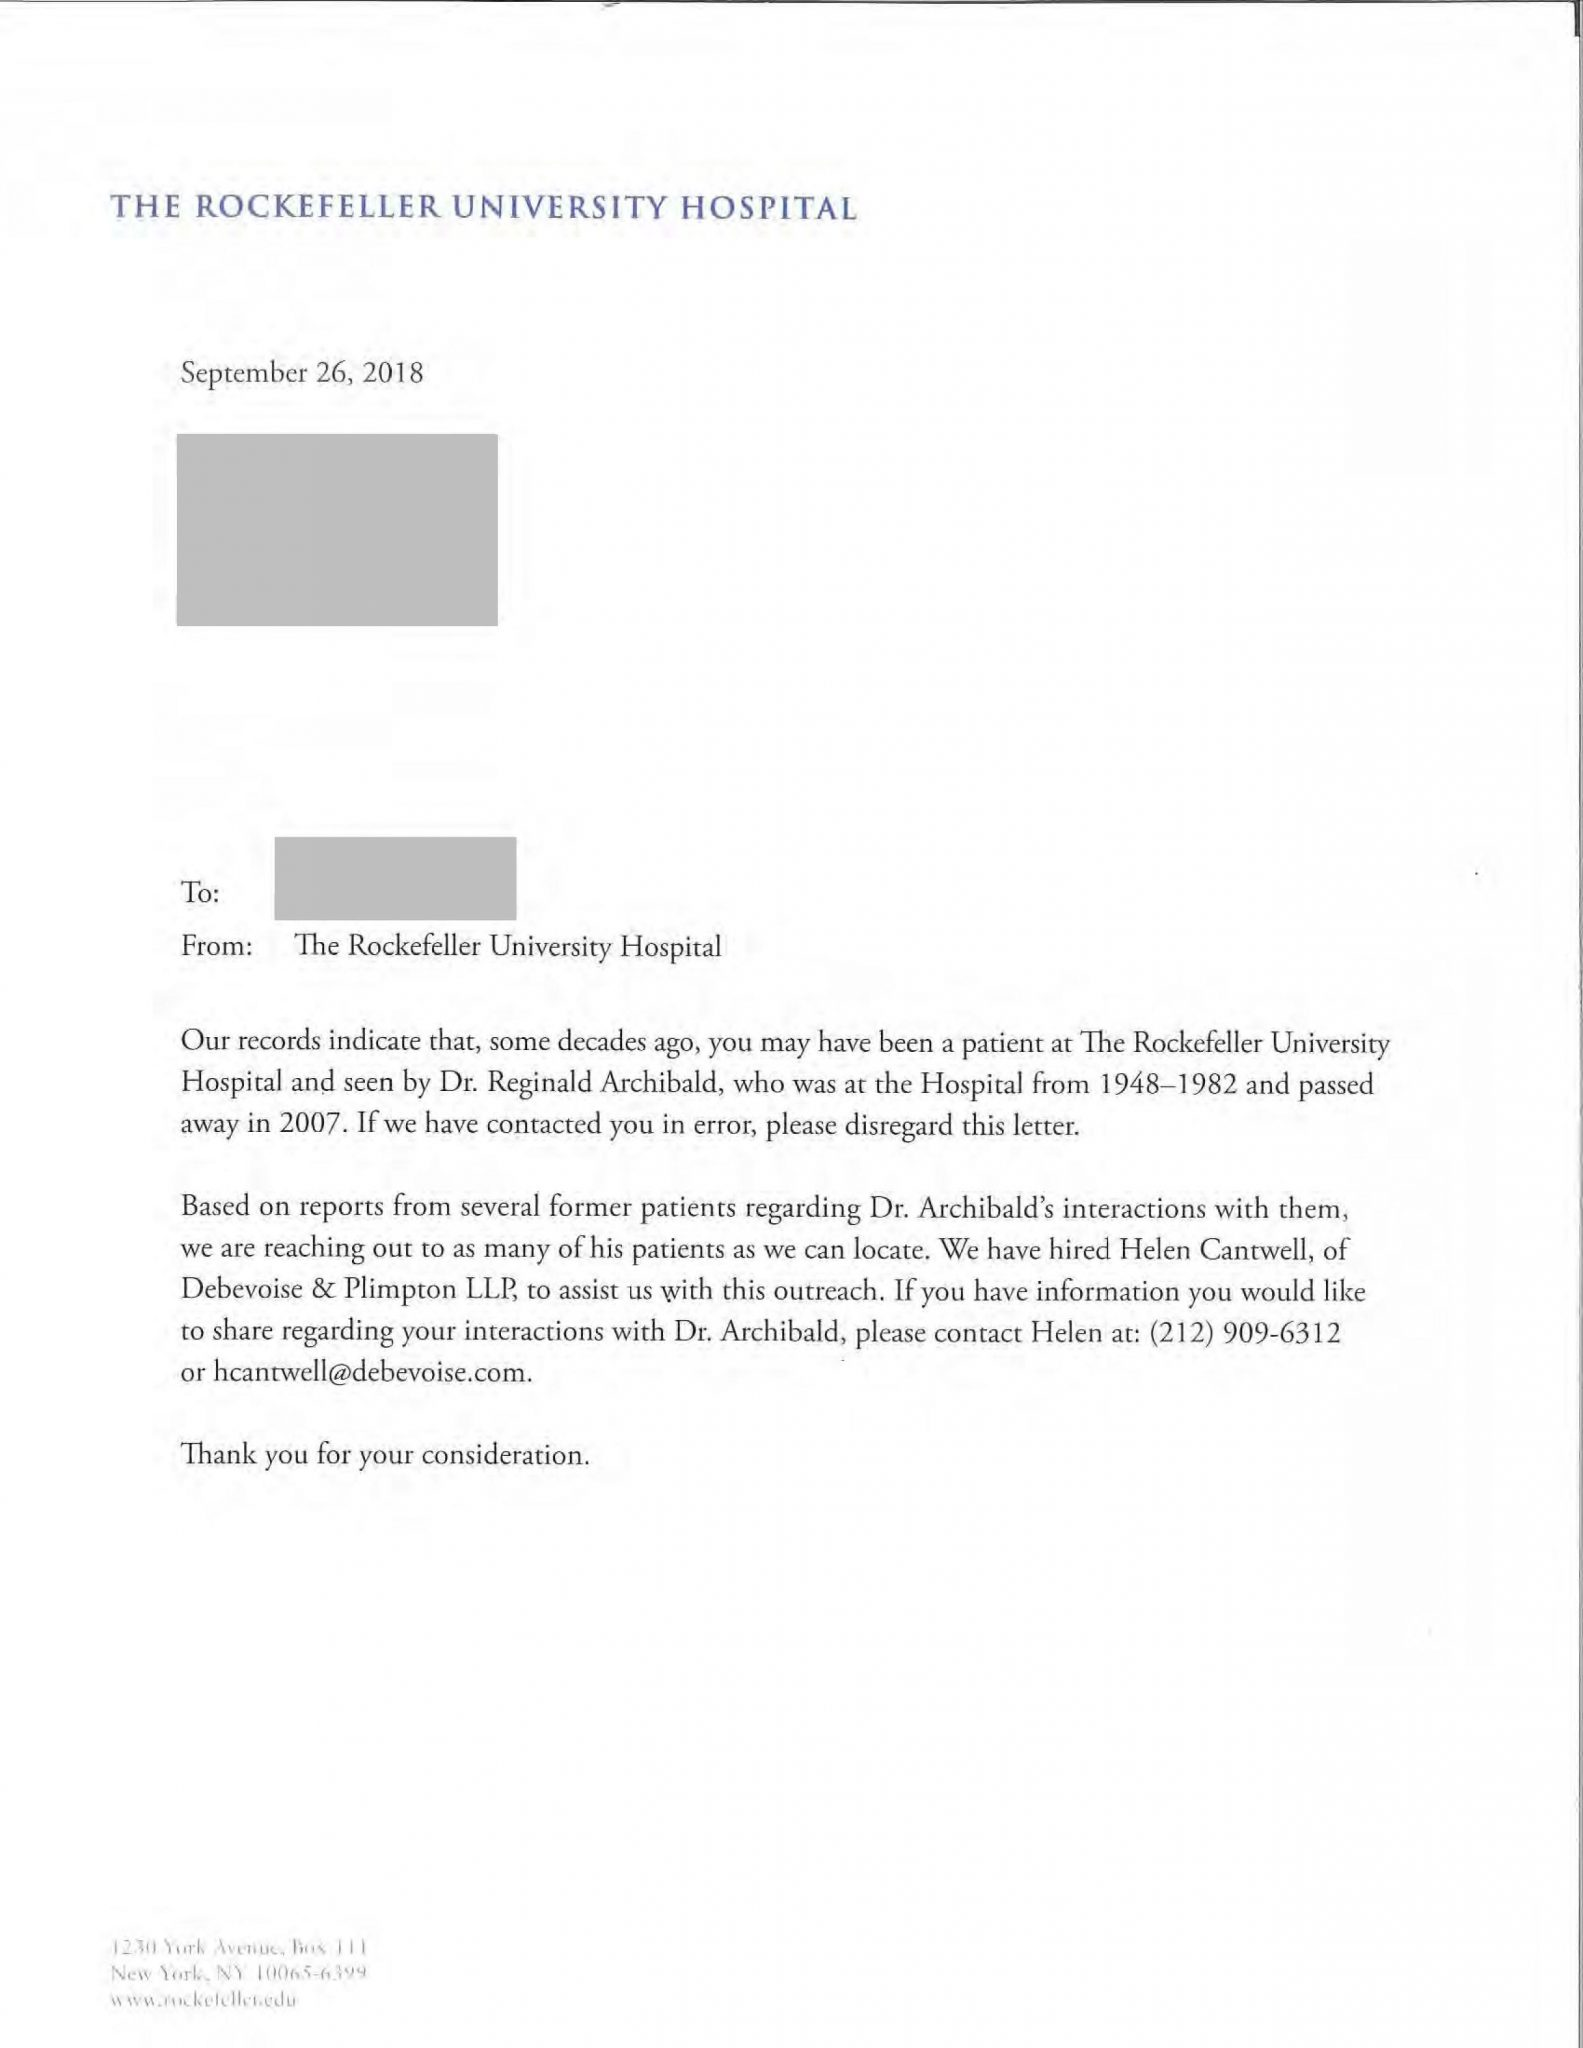 Rockefeller University Hospital letter regarding Reginald Archibald